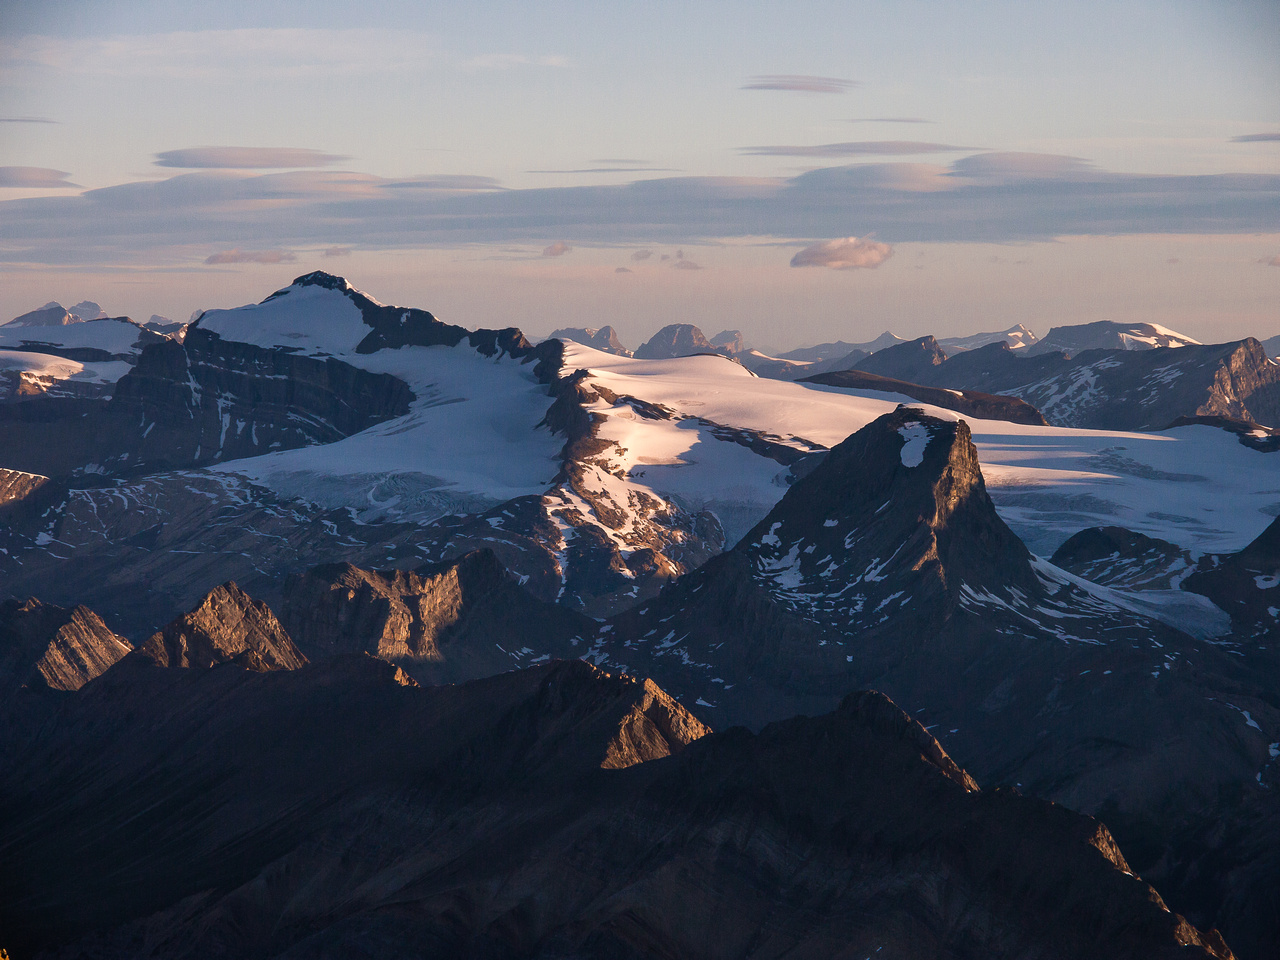 The highest peak on the Wapta Icefield, Mount Balfour, looms over Mount Niles.